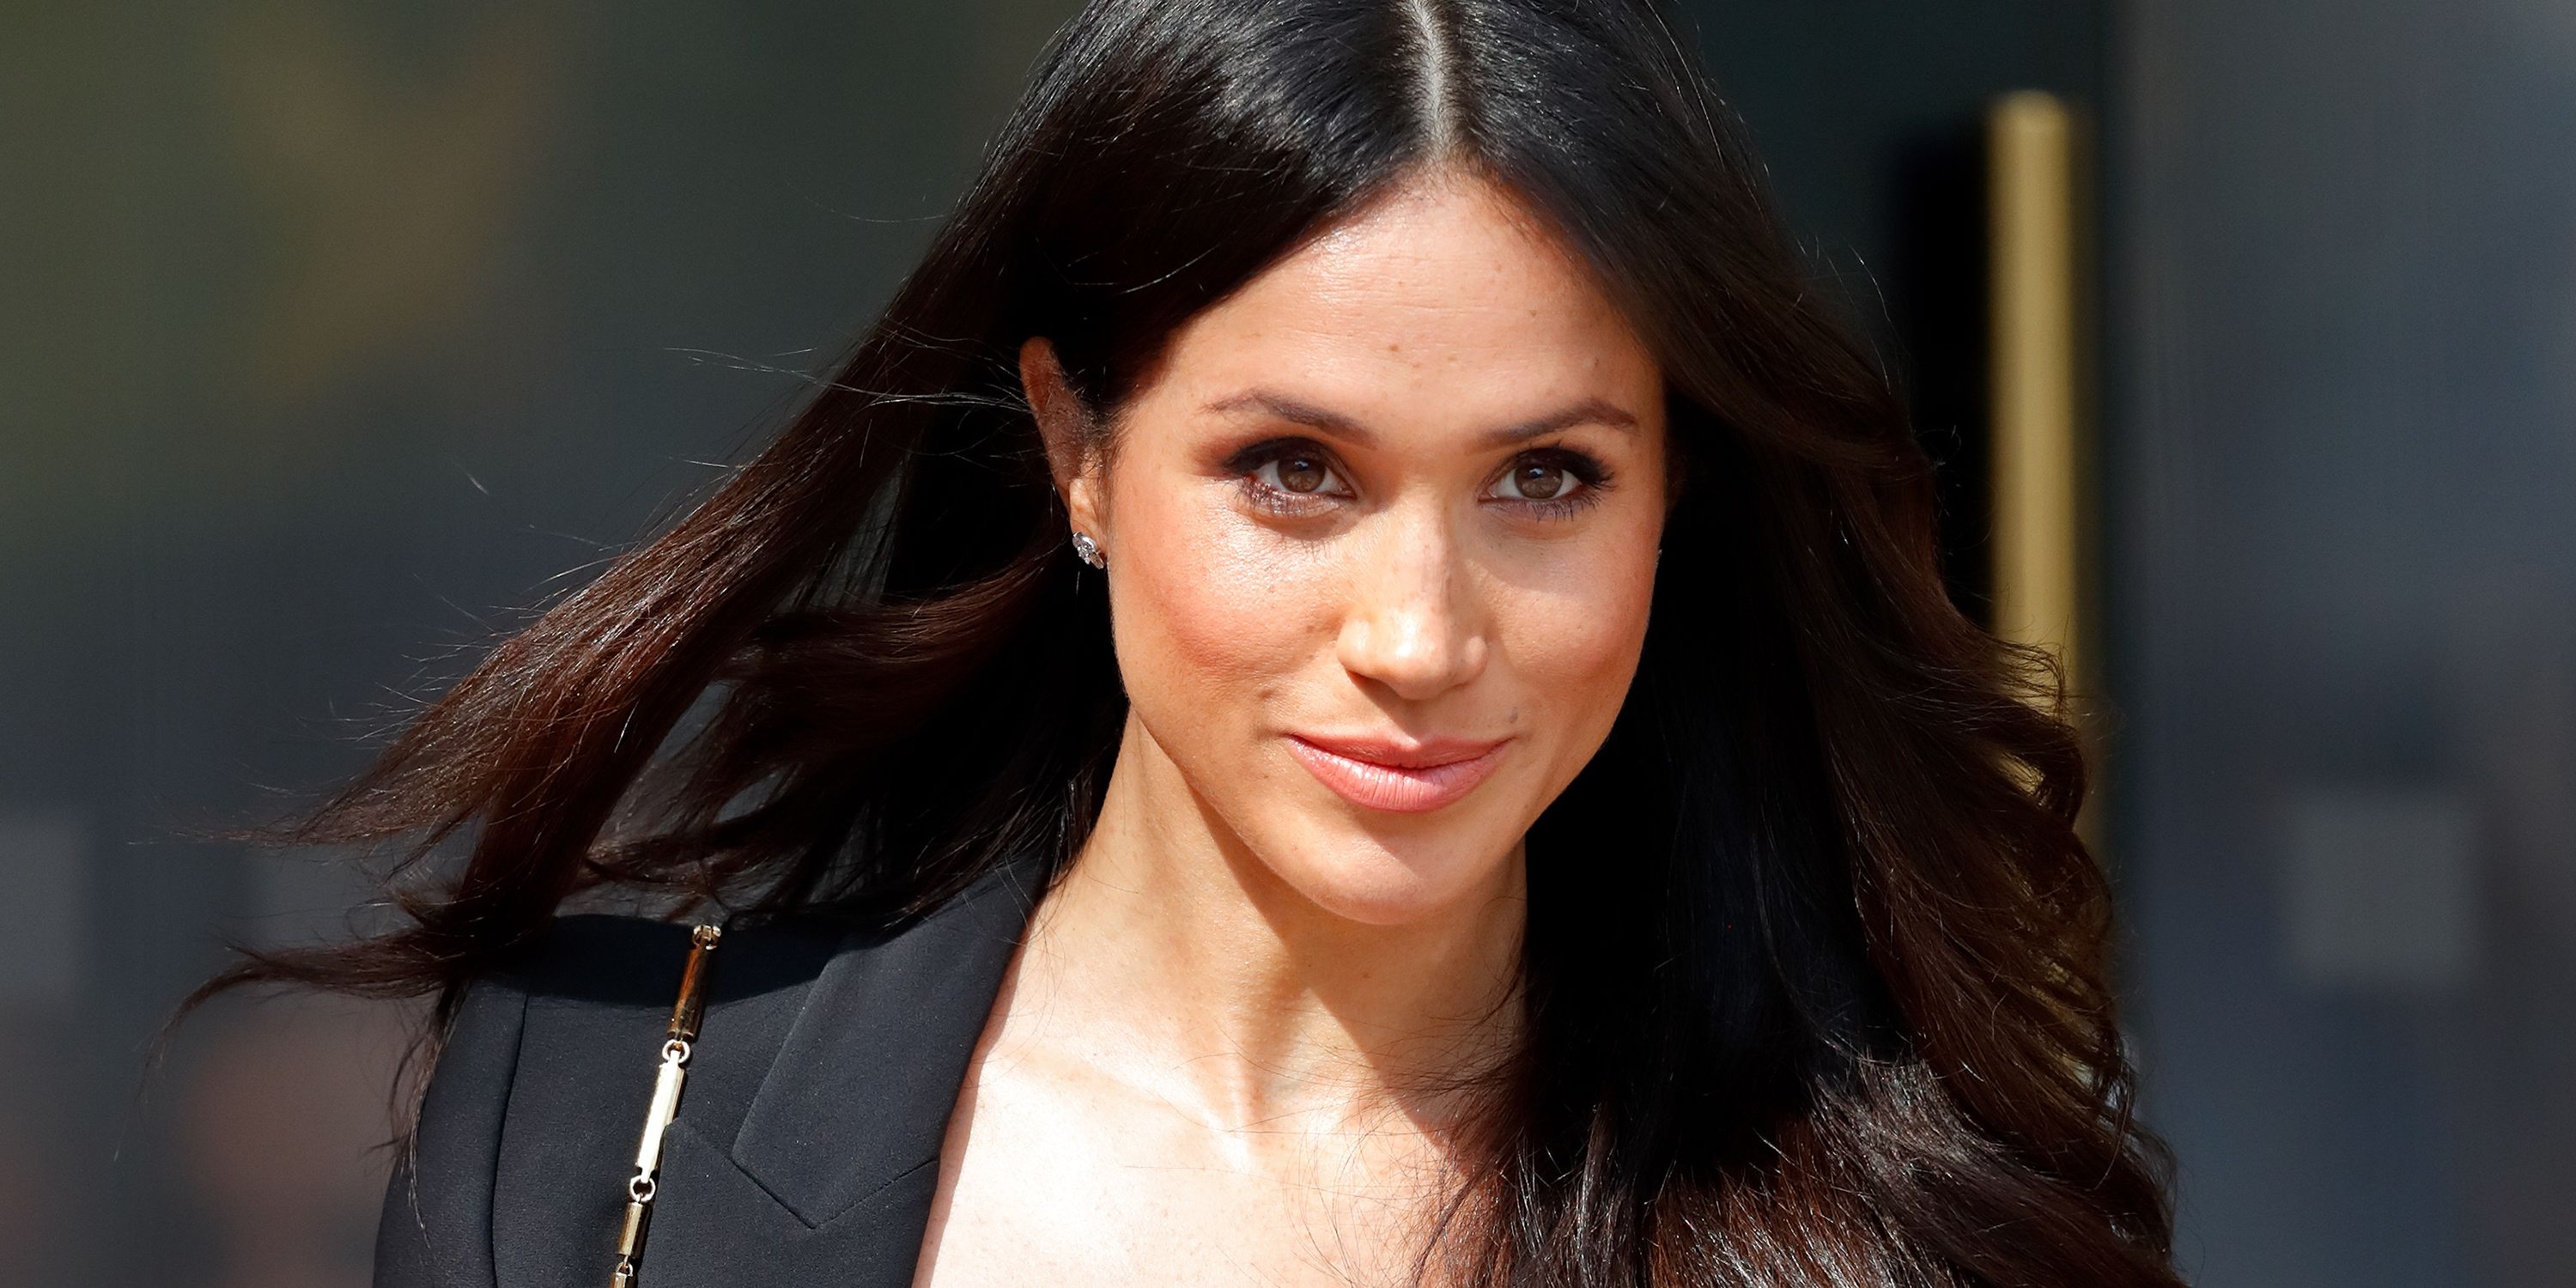 Is Meghan Markle Really a Robot in This Video? - Meghan